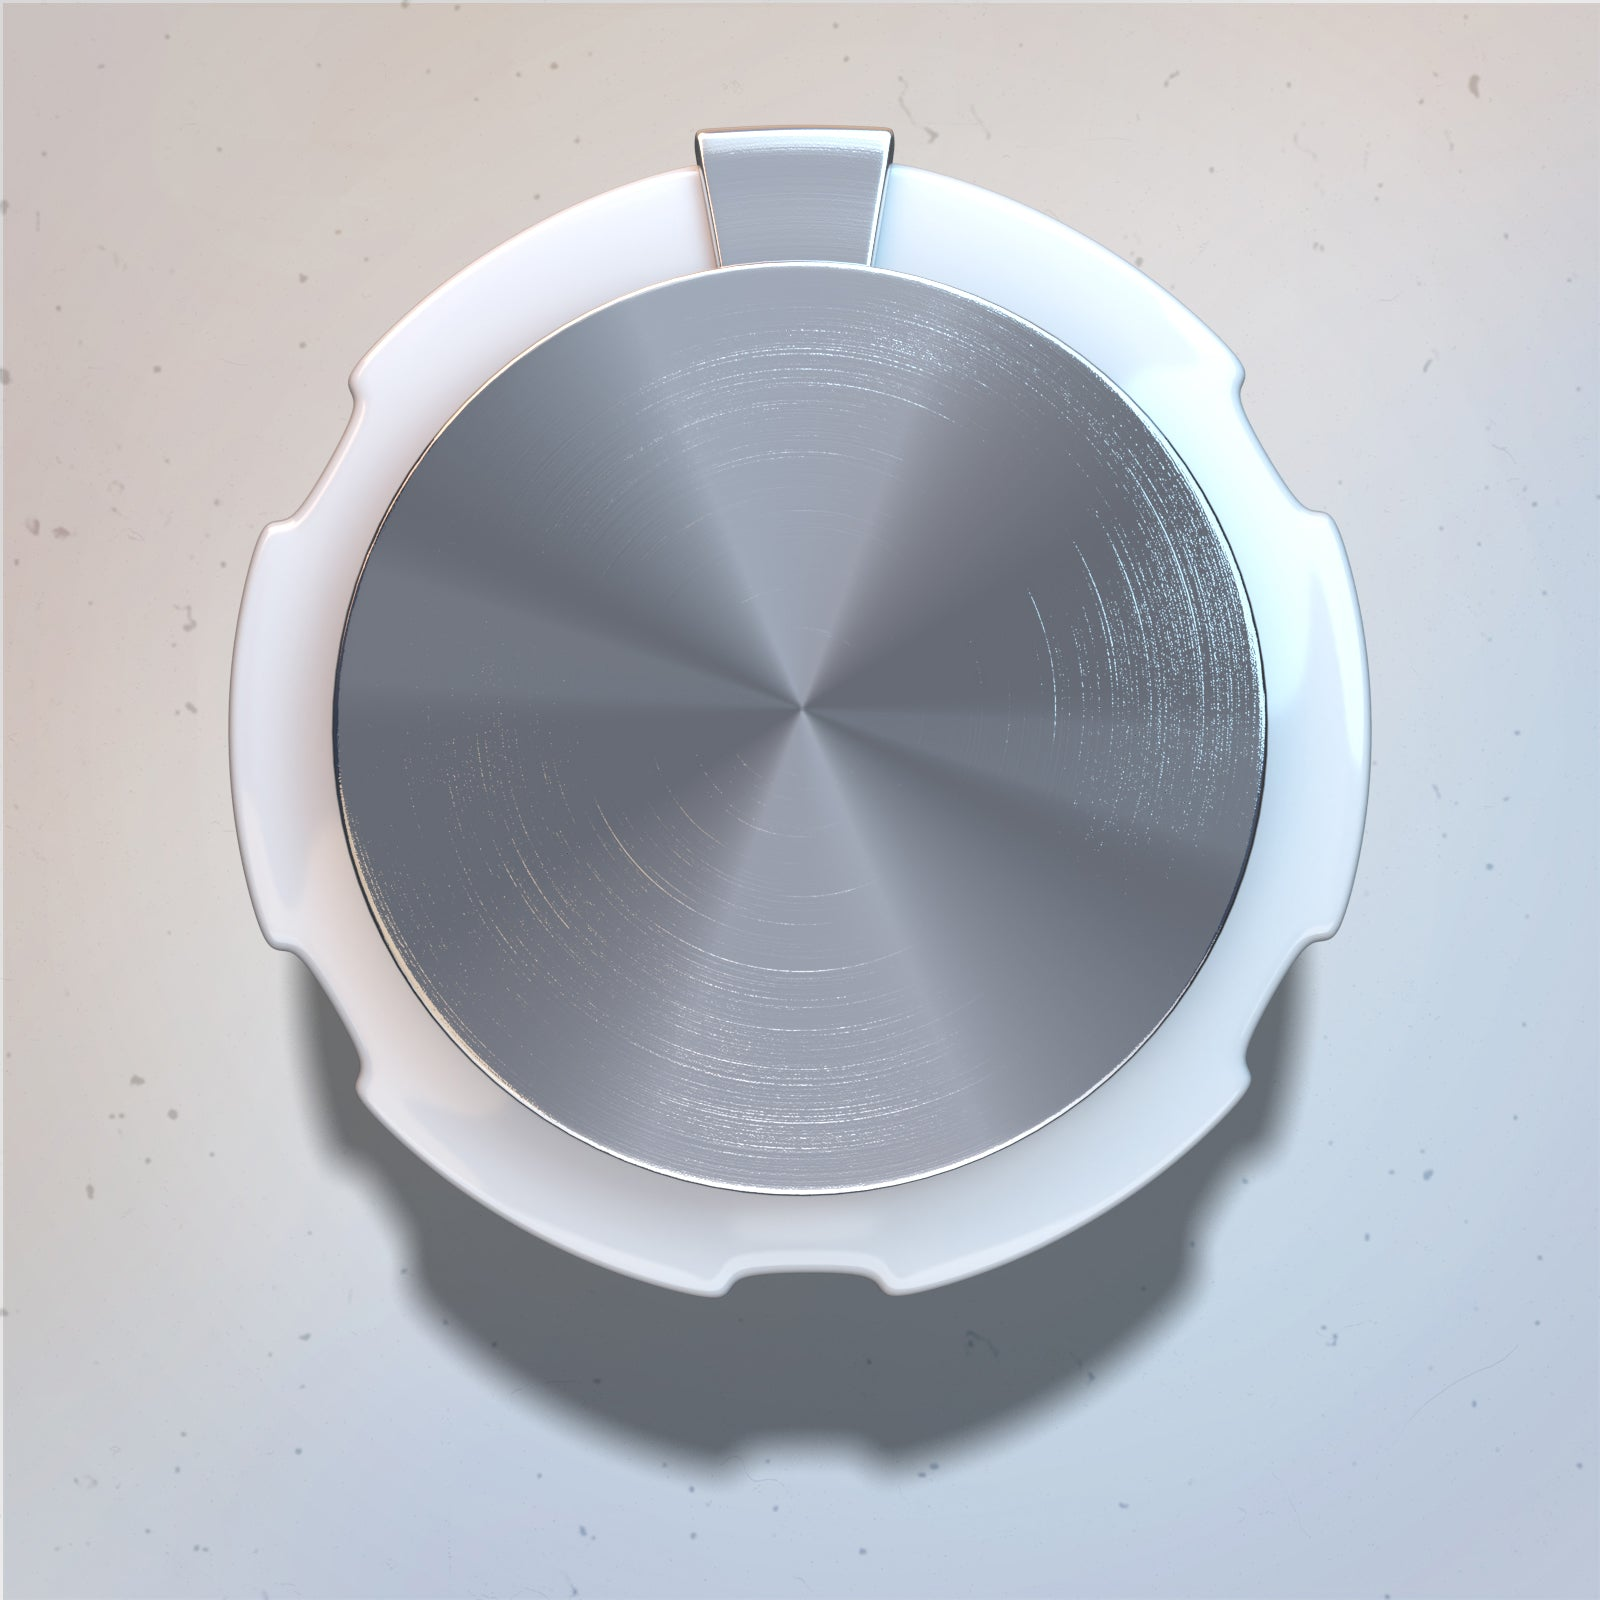 Combined rotary light clean knob 3D render